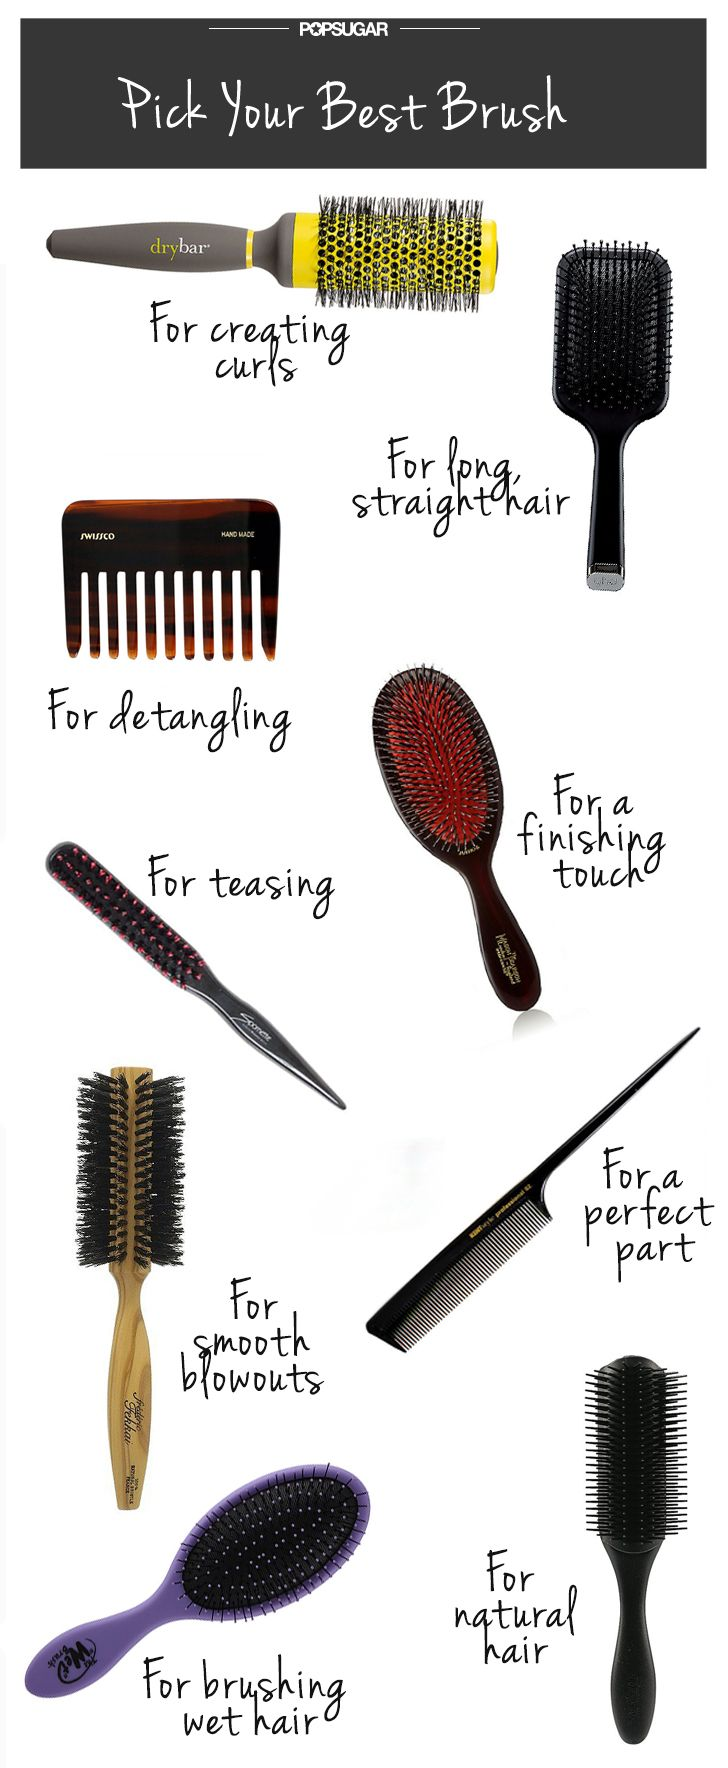 """We're featured in the """"Everything You Need to Know to Find Your Perfect Hairbrush"""" round up by PopSugar Beauty!  #drybar #thehardstuff #hair"""